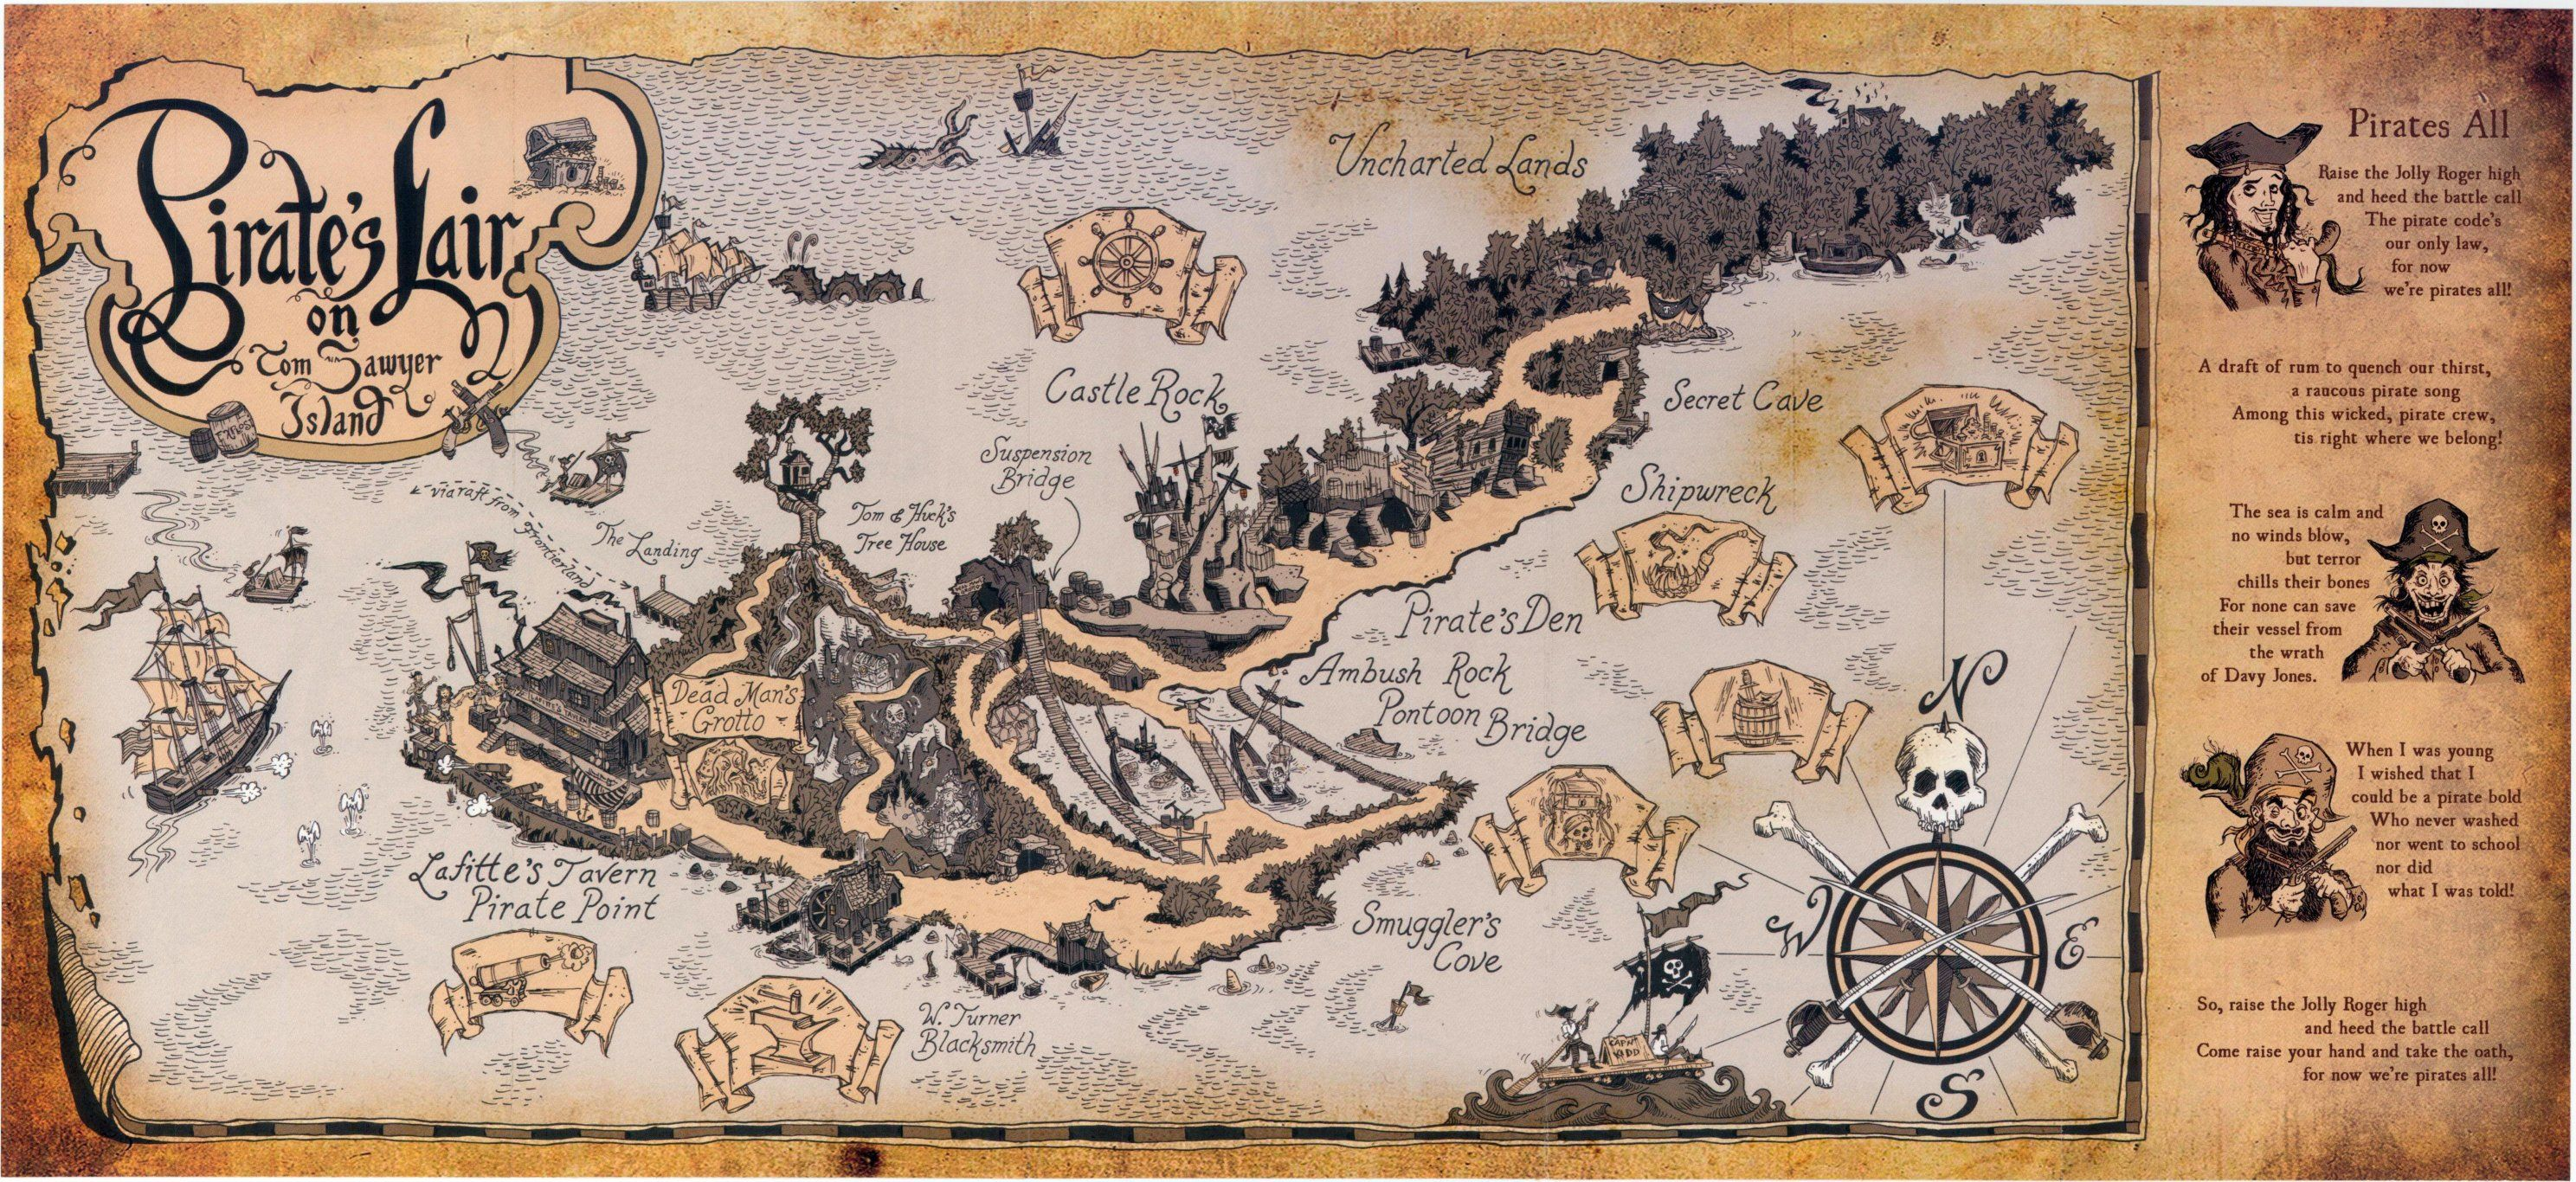 Disneylands Pirates Lair Map In The Style Of The Old Tom - Disneyland usa location map